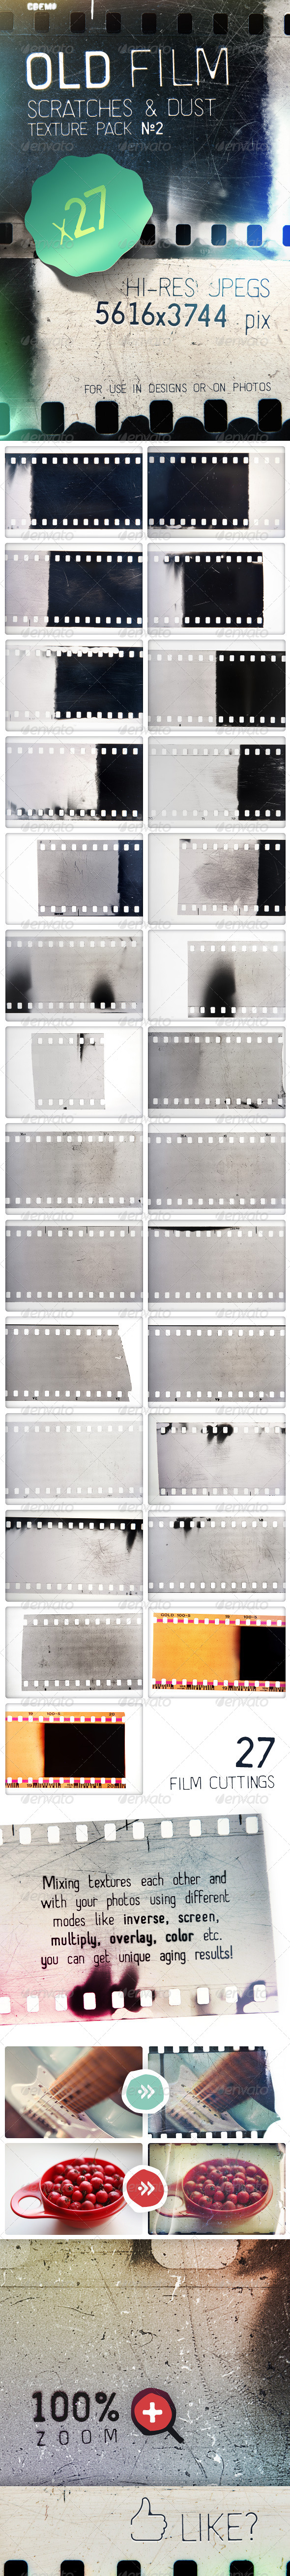 Old Film Cuttings - Scratches & Dust Textures Vol2 - Miscellaneous Textures